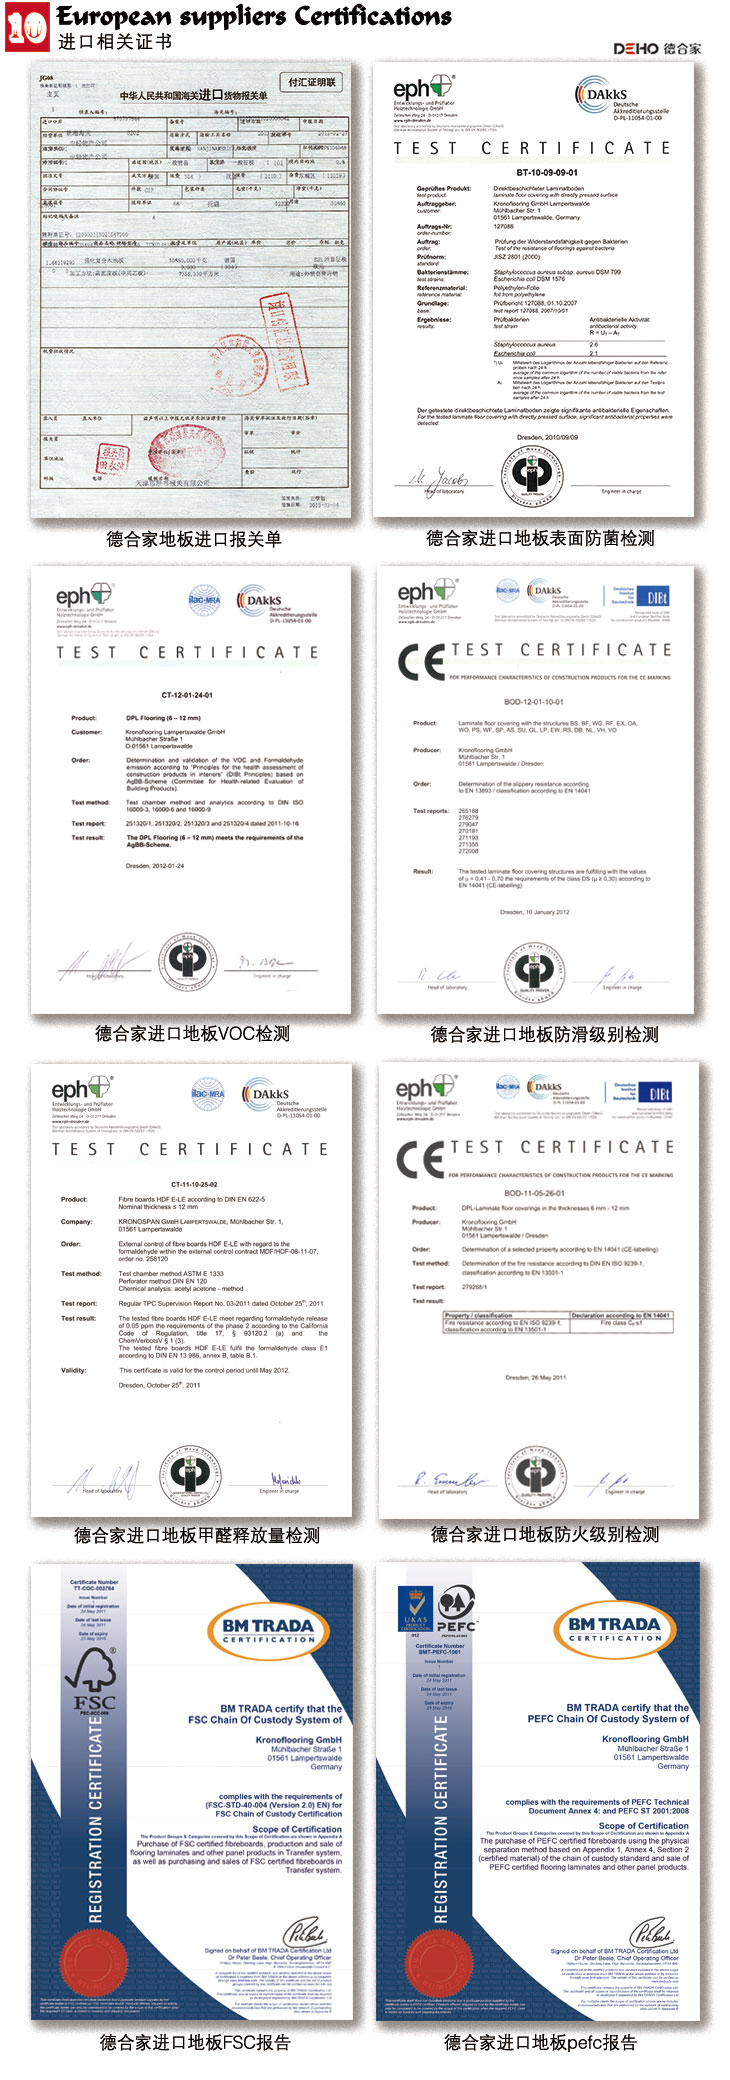 10-European-suppliers-Certifications.jpg